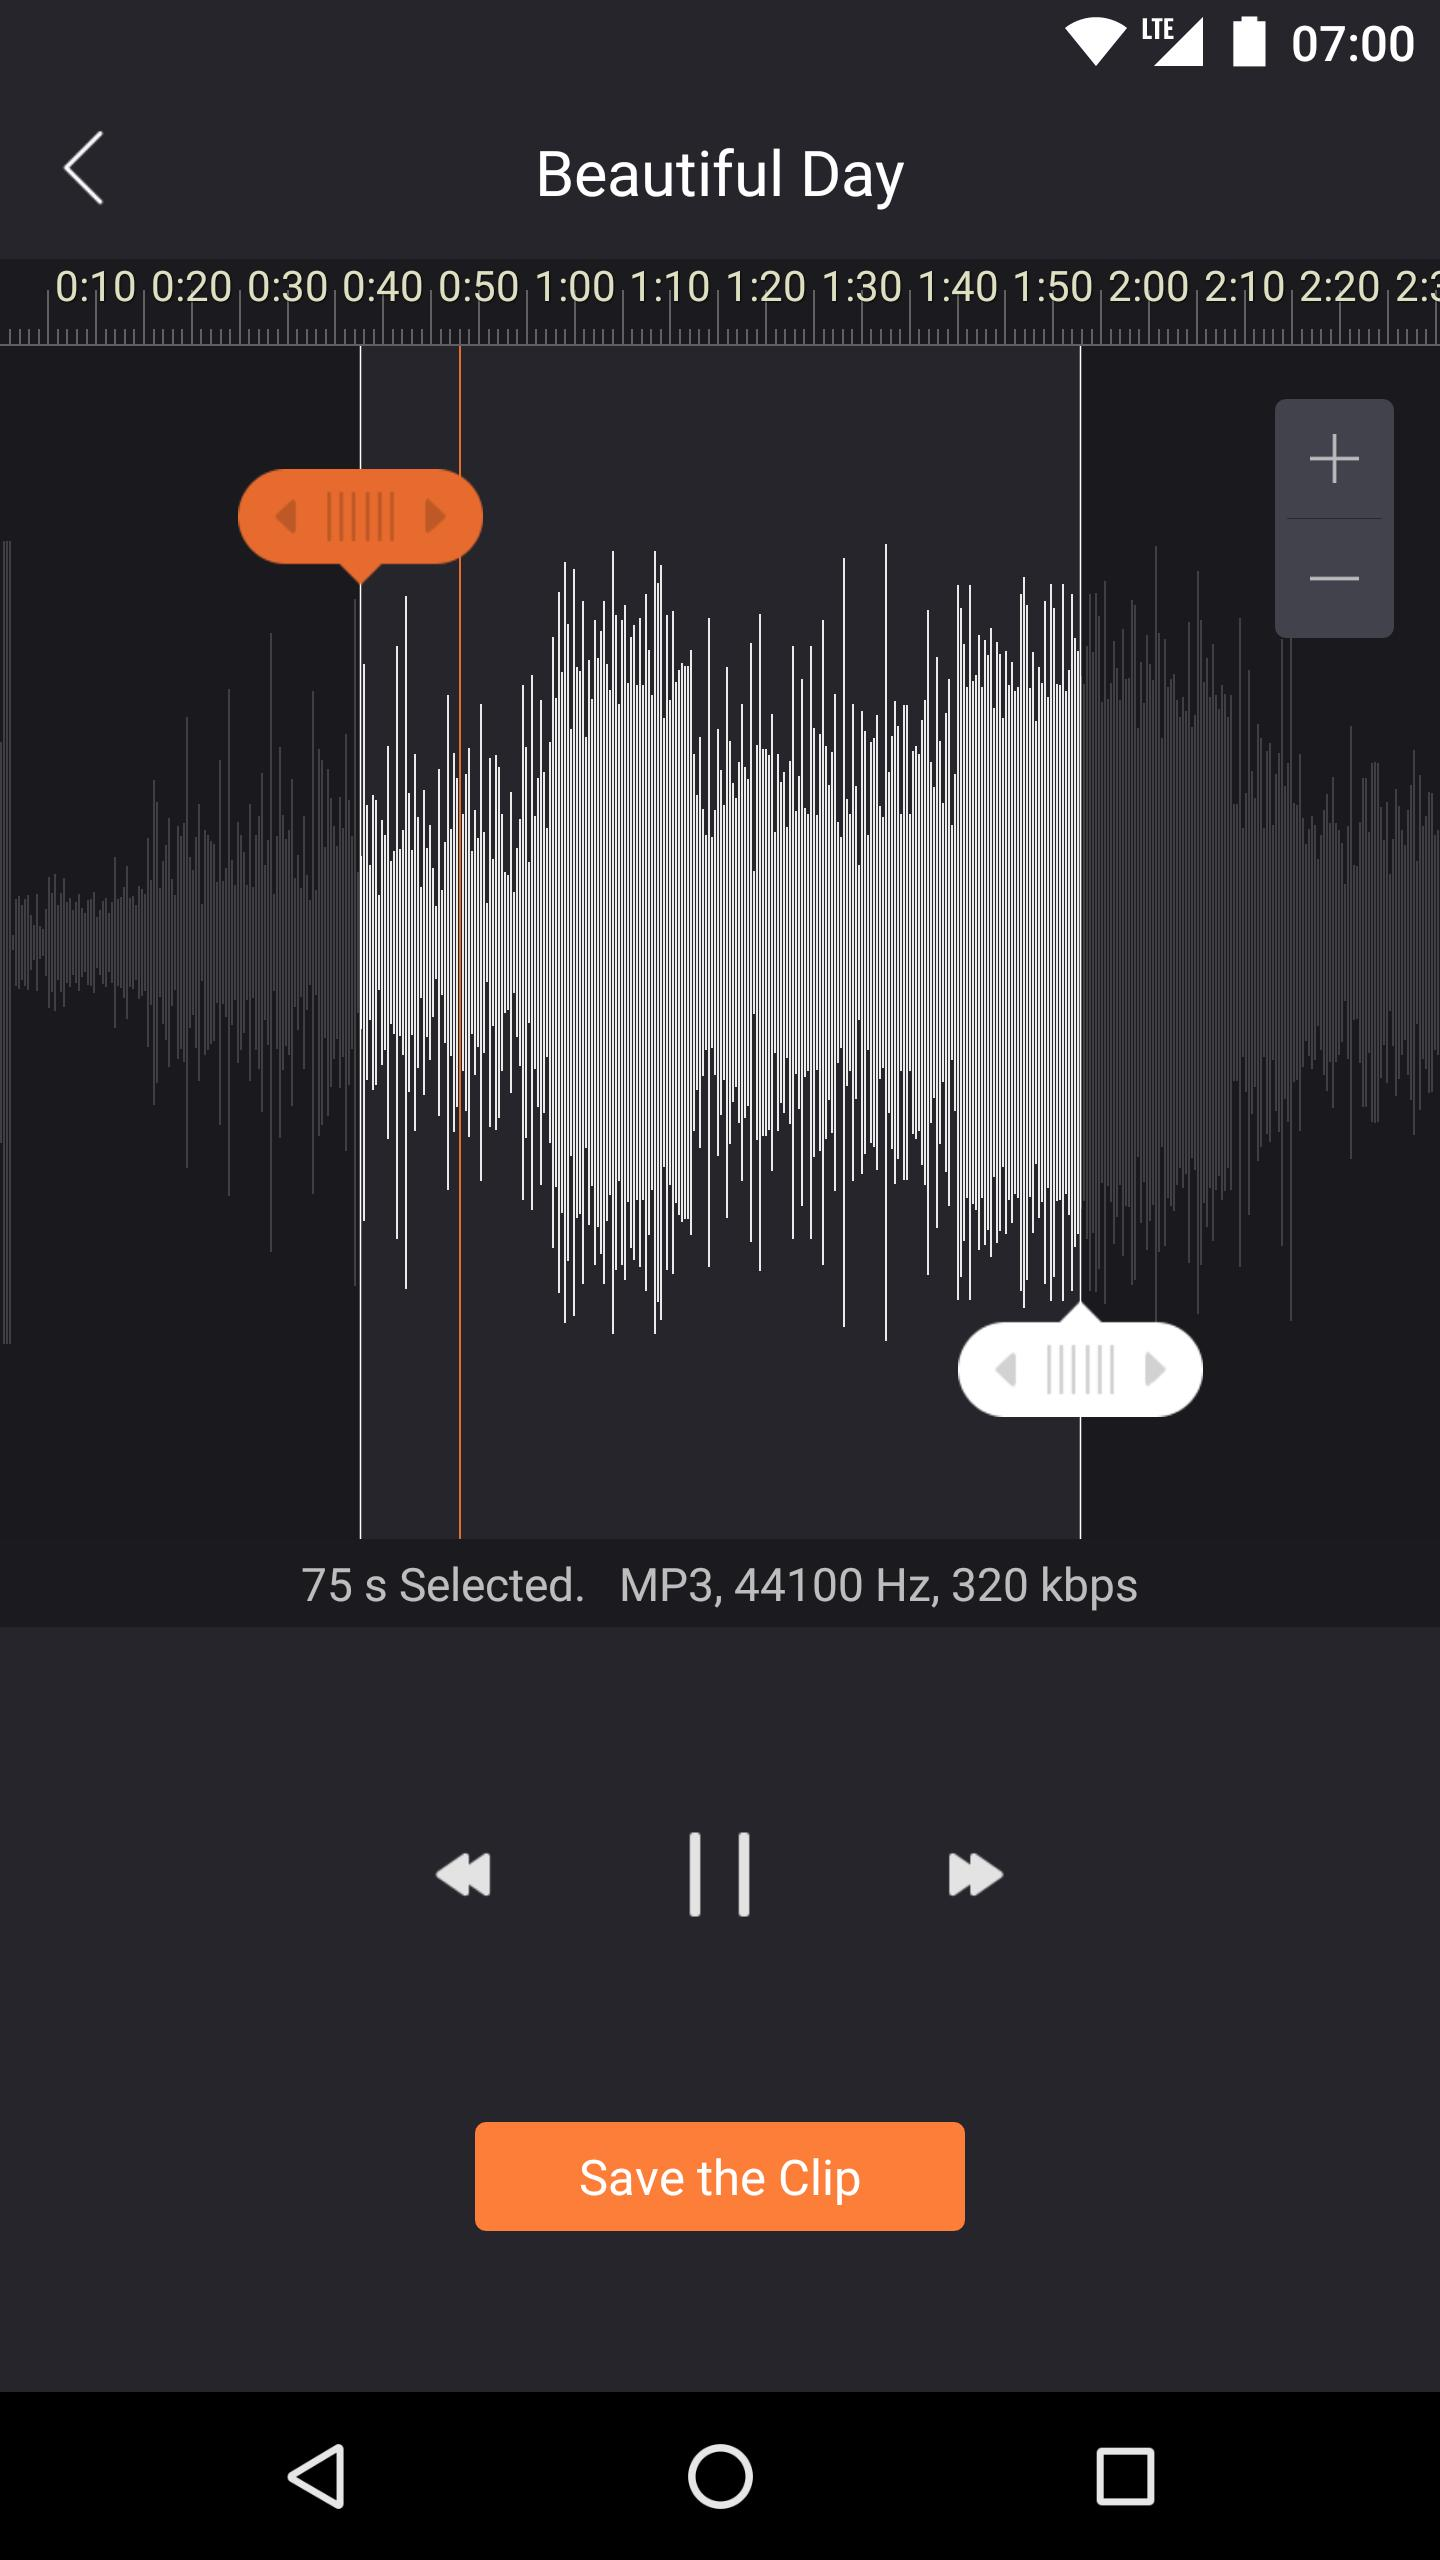 Music Player - just LISTENit, Local, Without Wifi 1.6.58_ww Screenshot 5